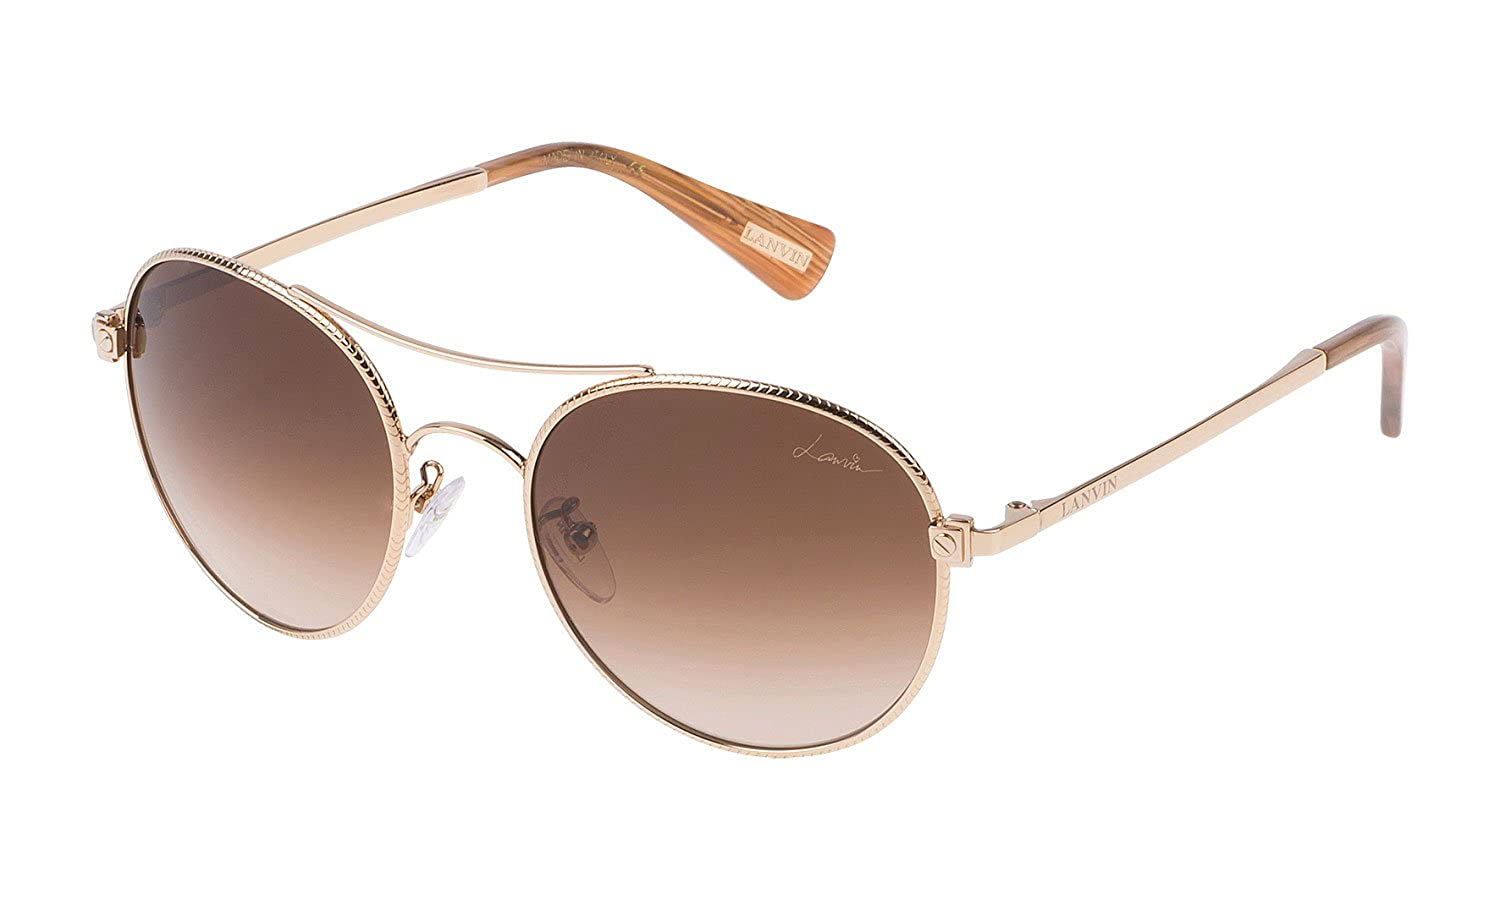 0c0f6b380 Amazon.com: Lanvin Paris SLN067 300 Gold SLN067 Round Sunglasses Lens  Category 3 Lens Mirro: Clothing